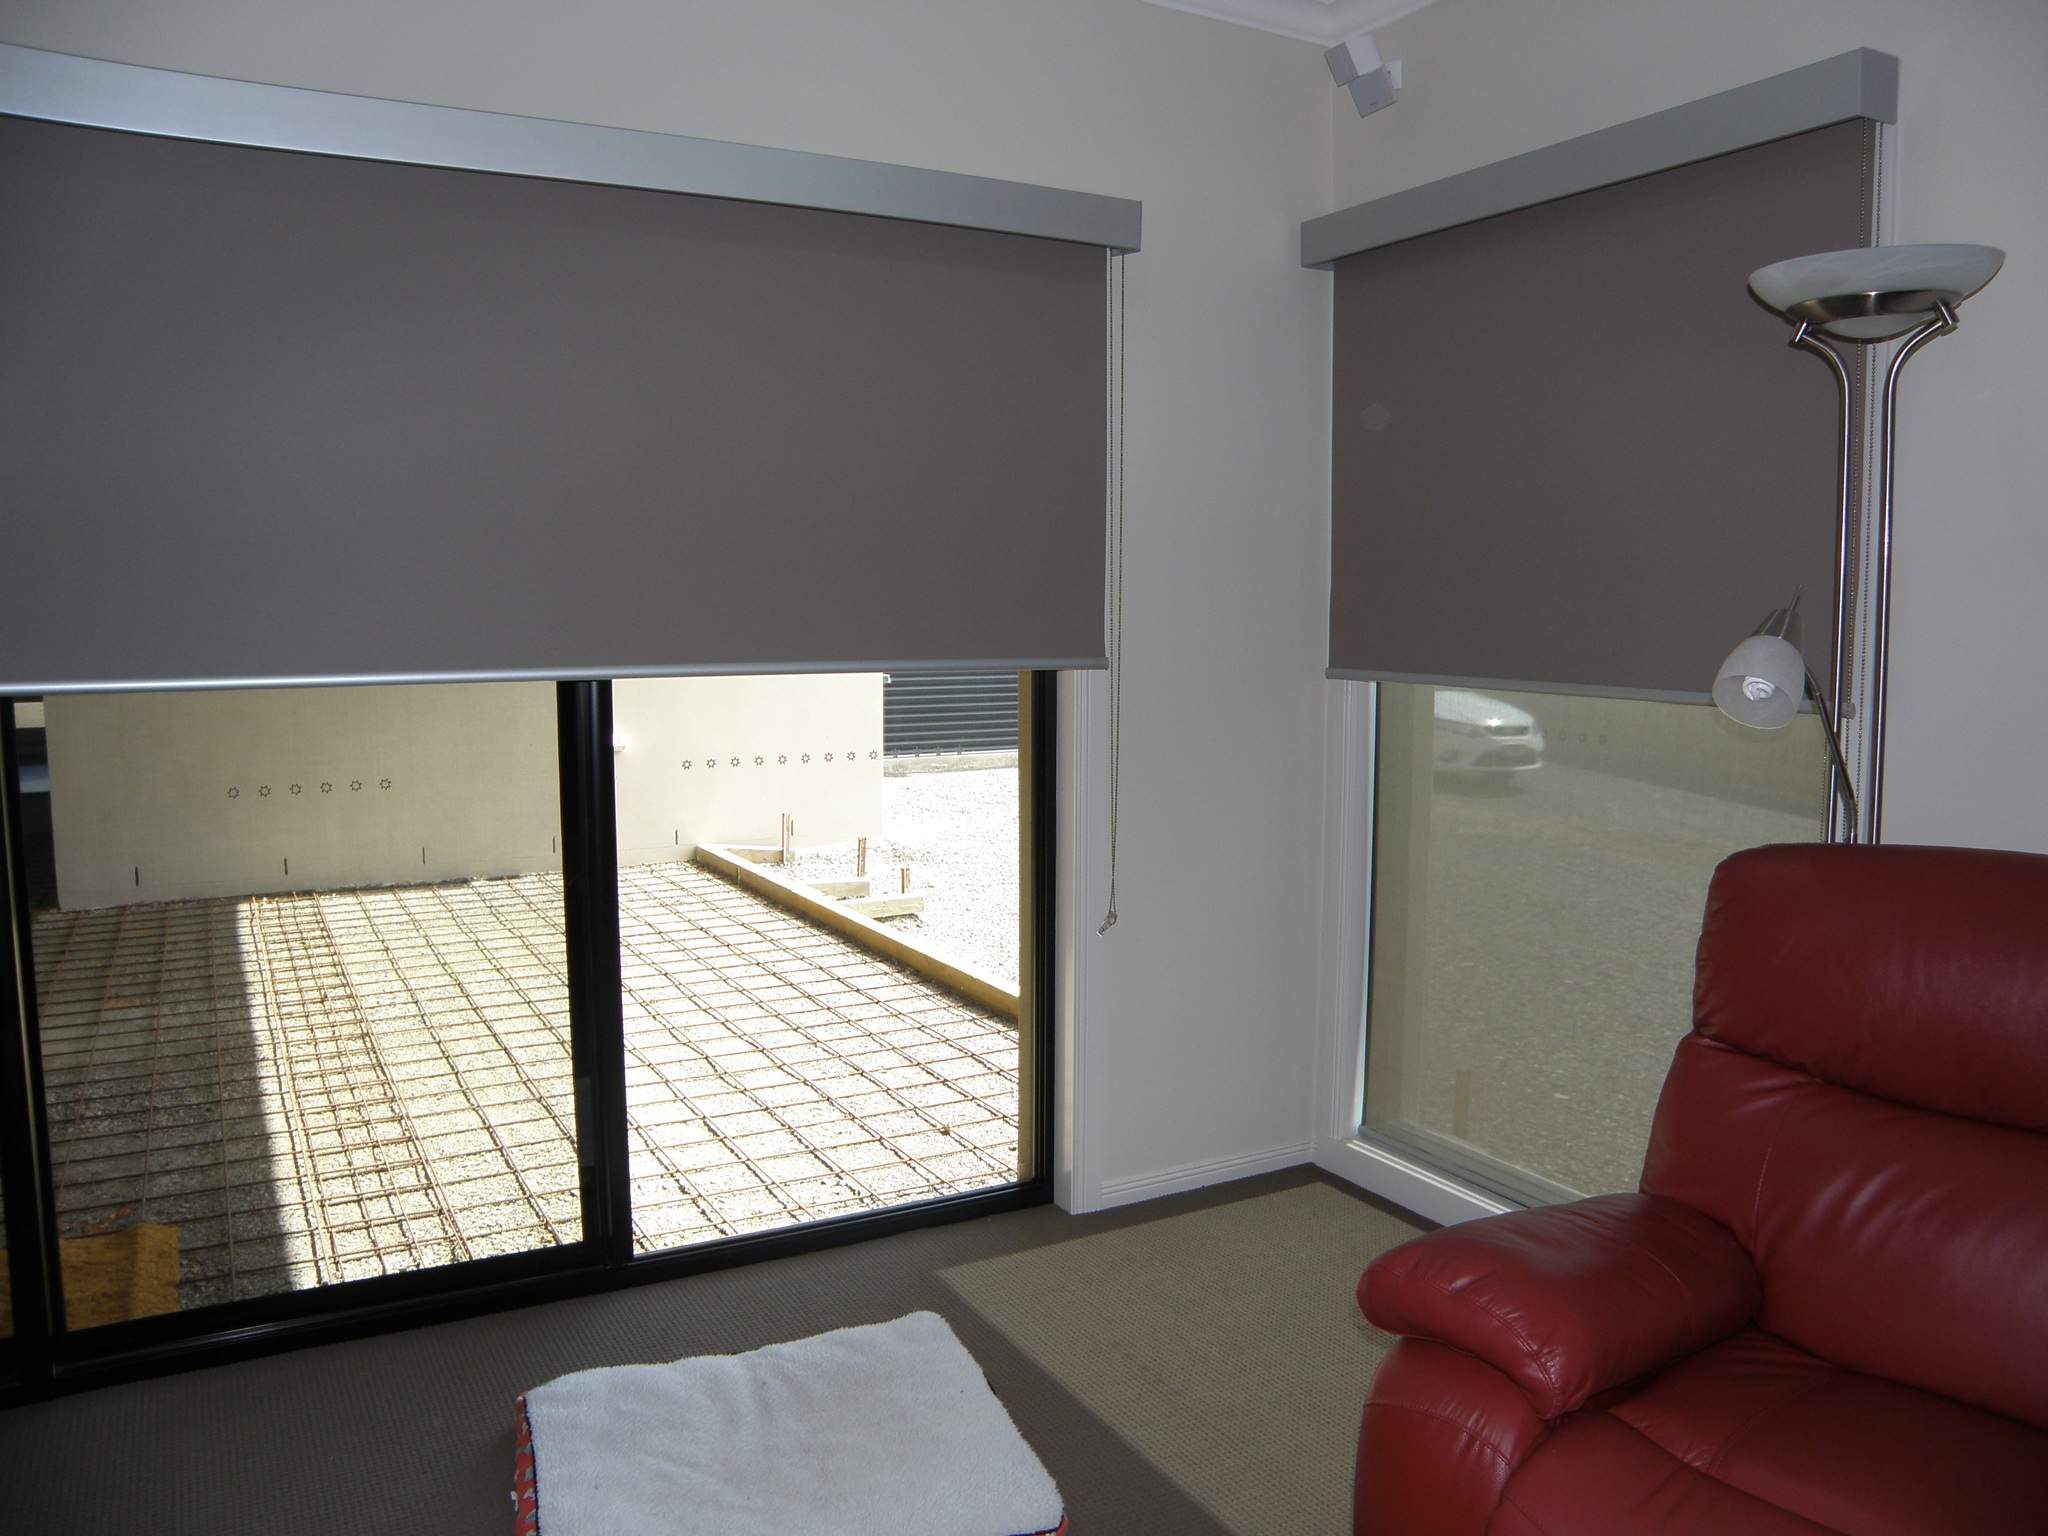 A Roller Blinds Into Blinds